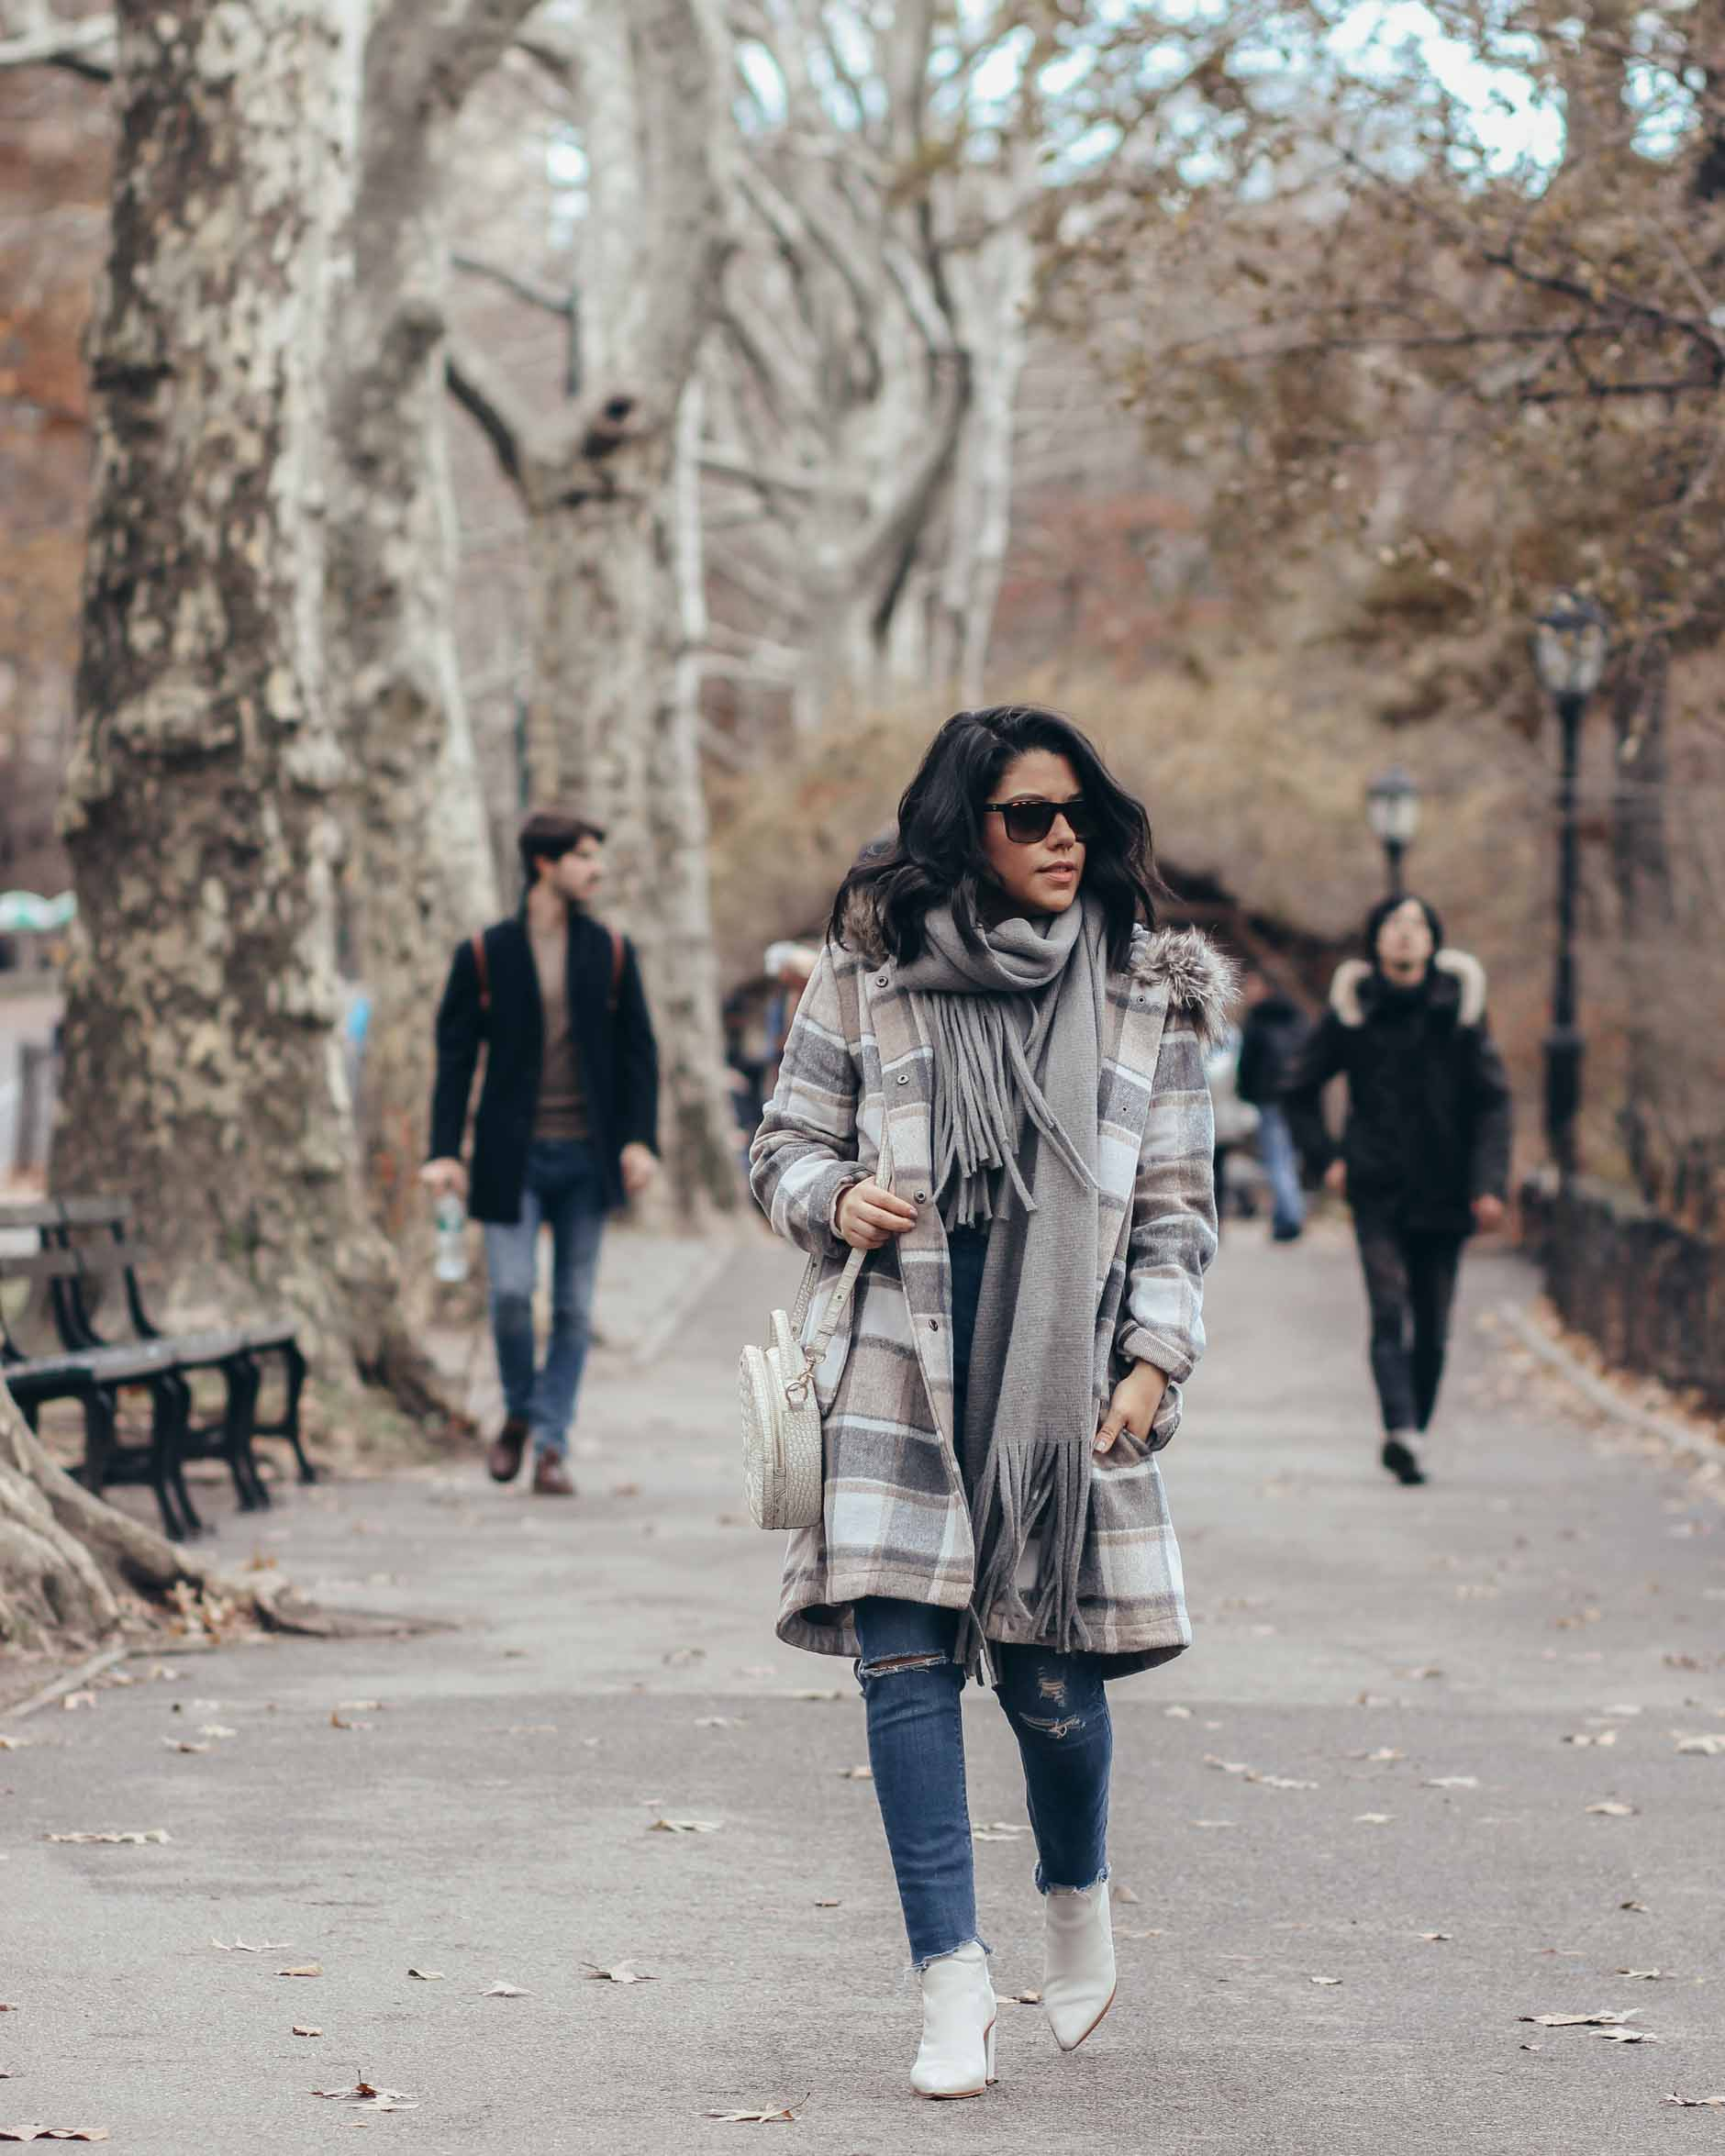 lifesyle blogger naty michele walking in central park with plaid coat